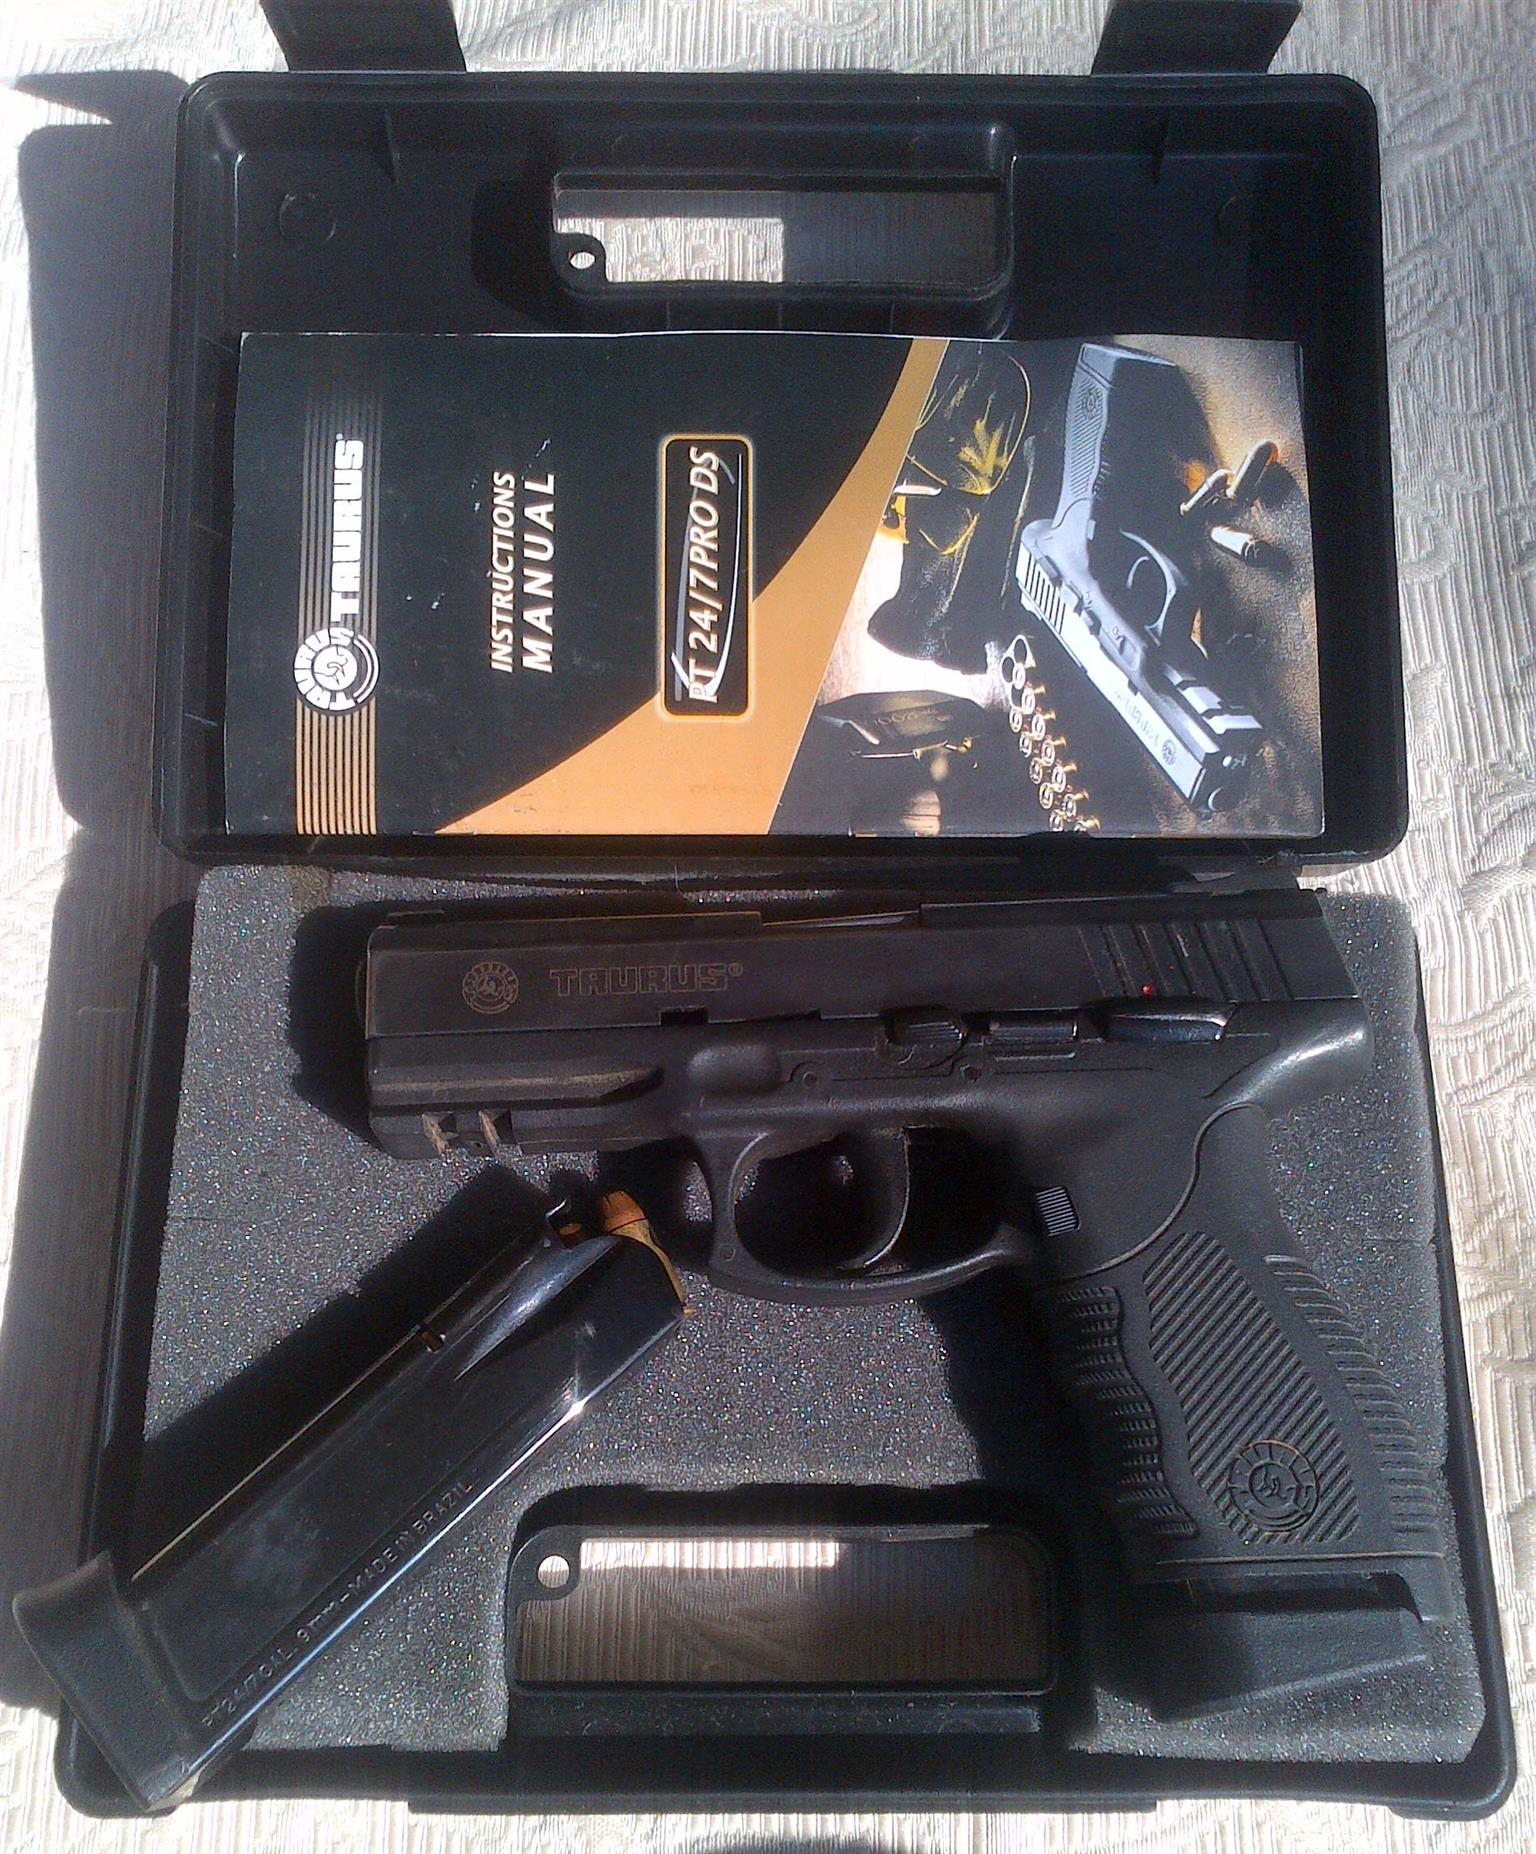 TAURUS PT24/7 DS 9mm PARA WITH 2 MAGAZINES AND ORIGINAL BOX